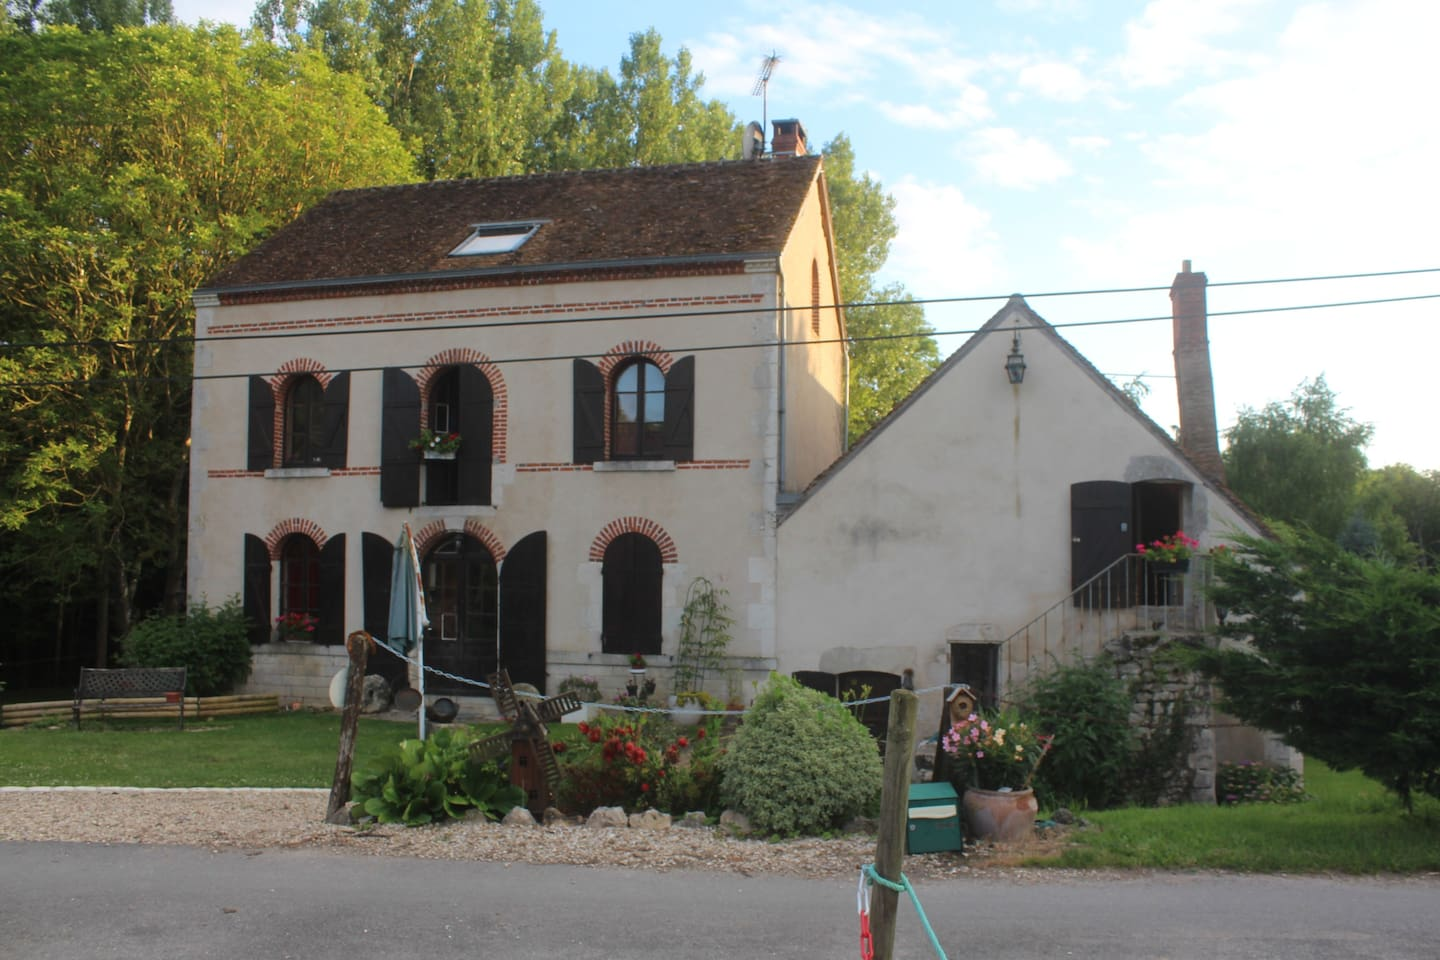 Le Moulin de la Fontaine